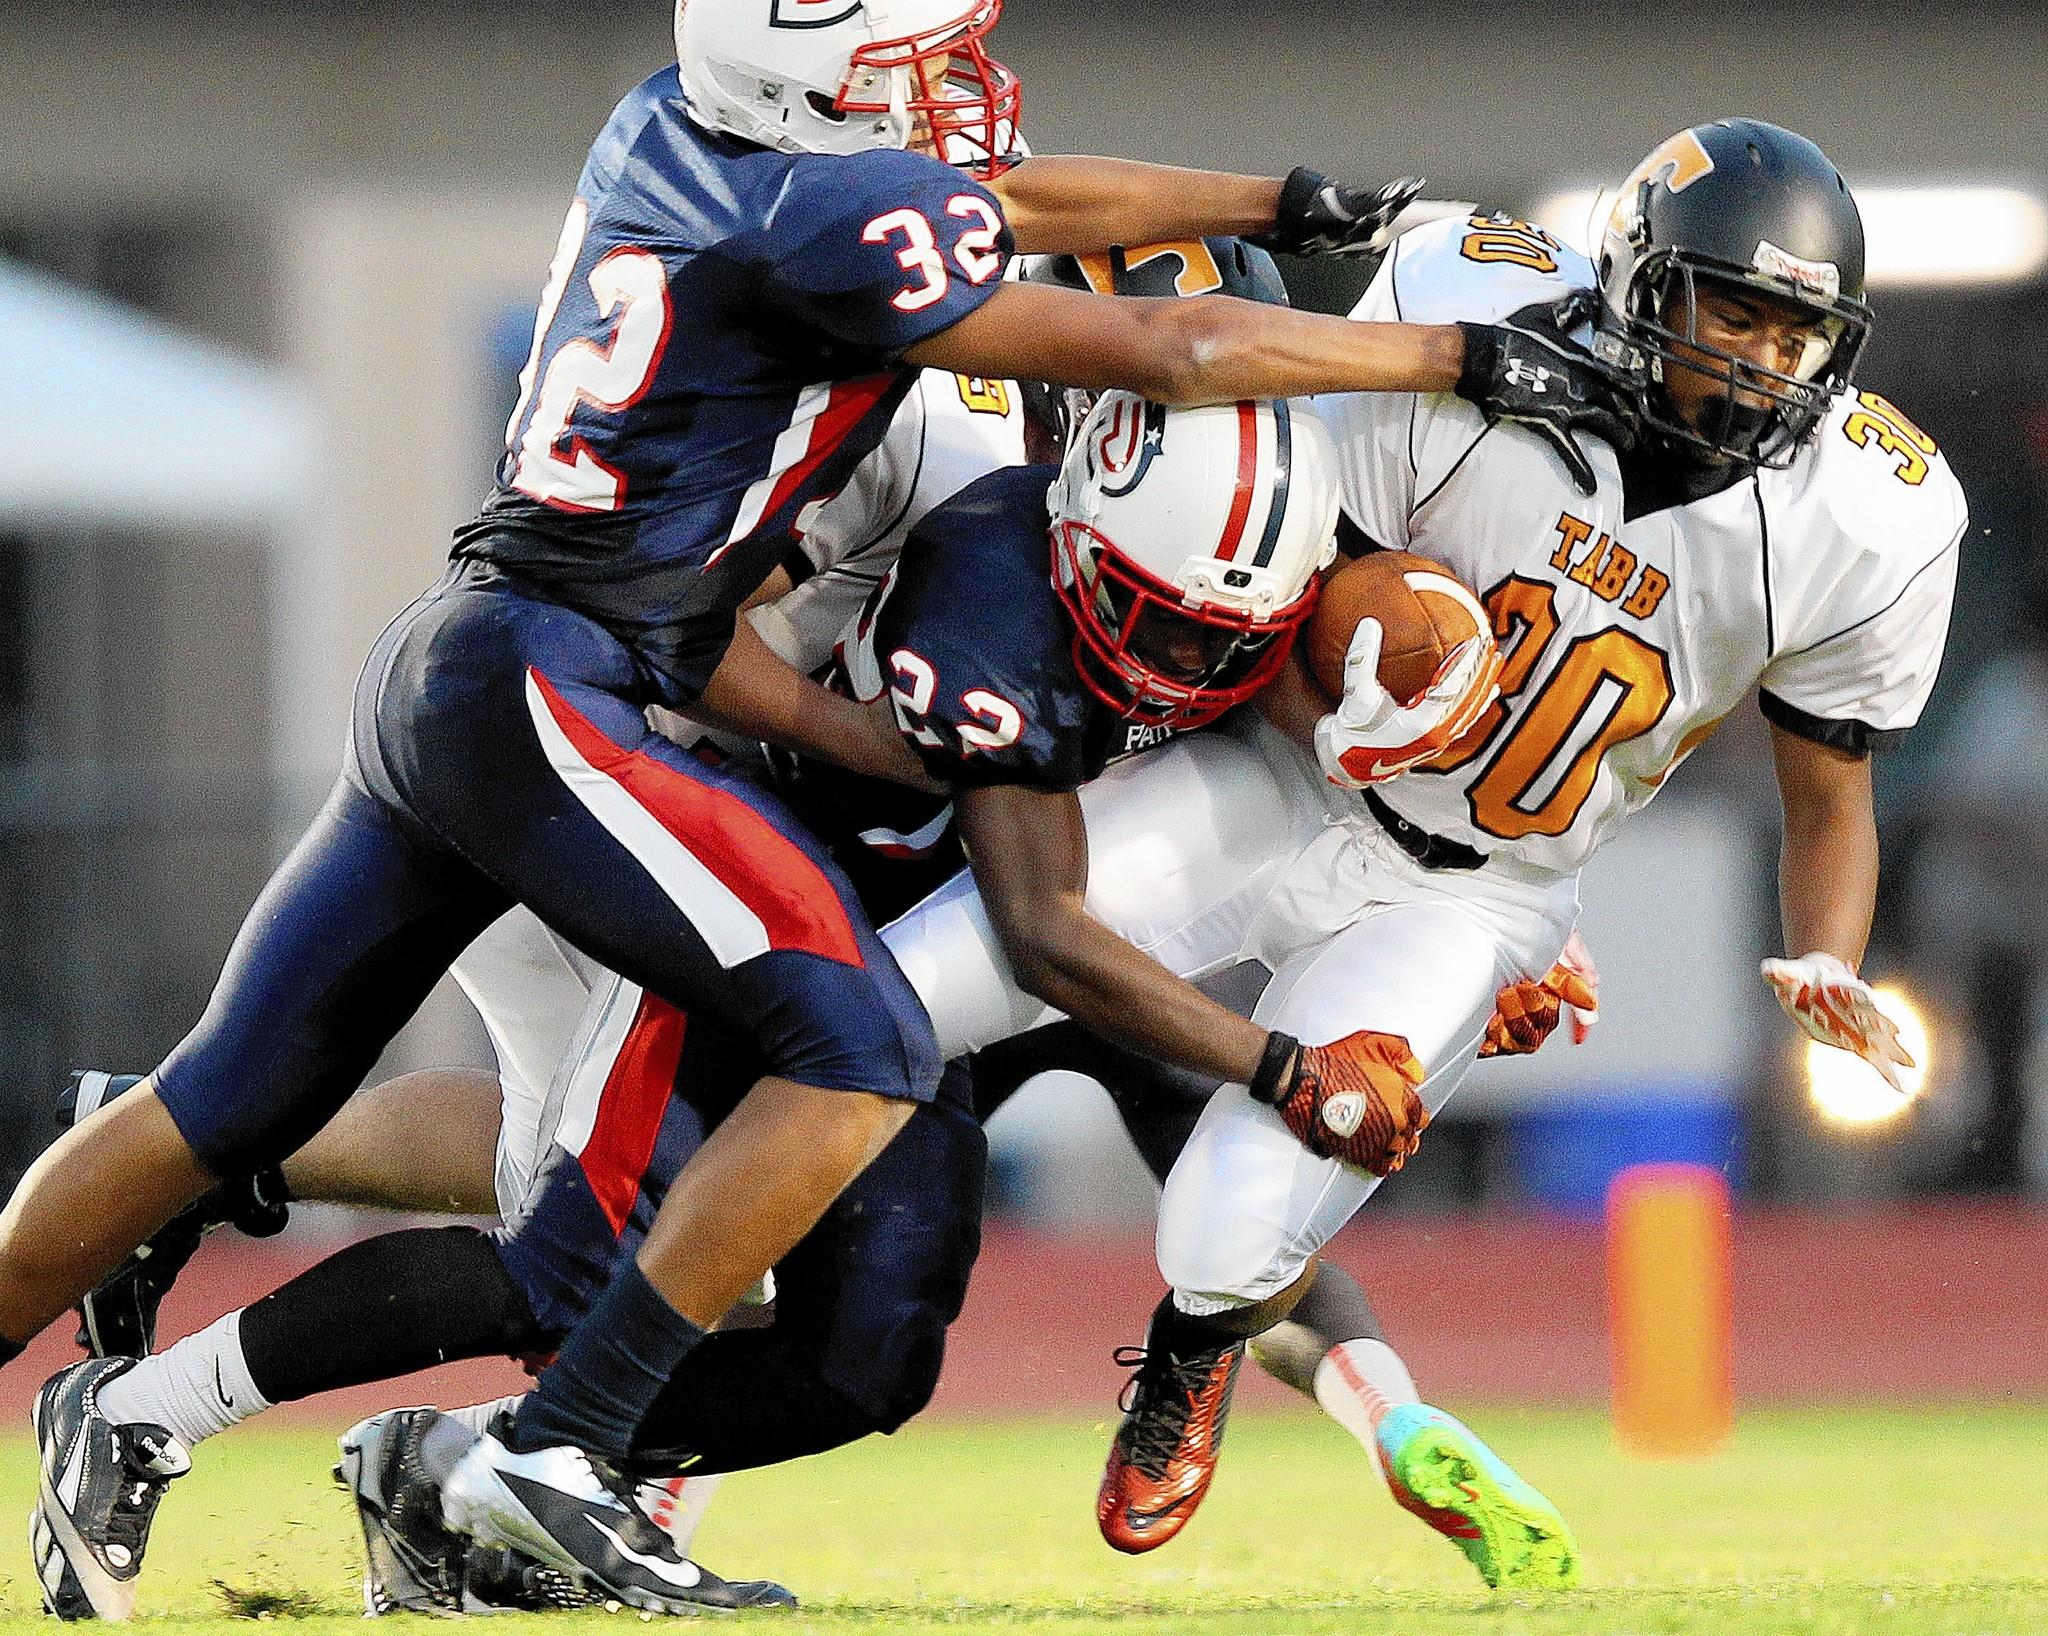 D'Andre McCray of Tabb is dragged down by Javon Brown of Denbigh during the second quarter at Todd Stadium Friday.